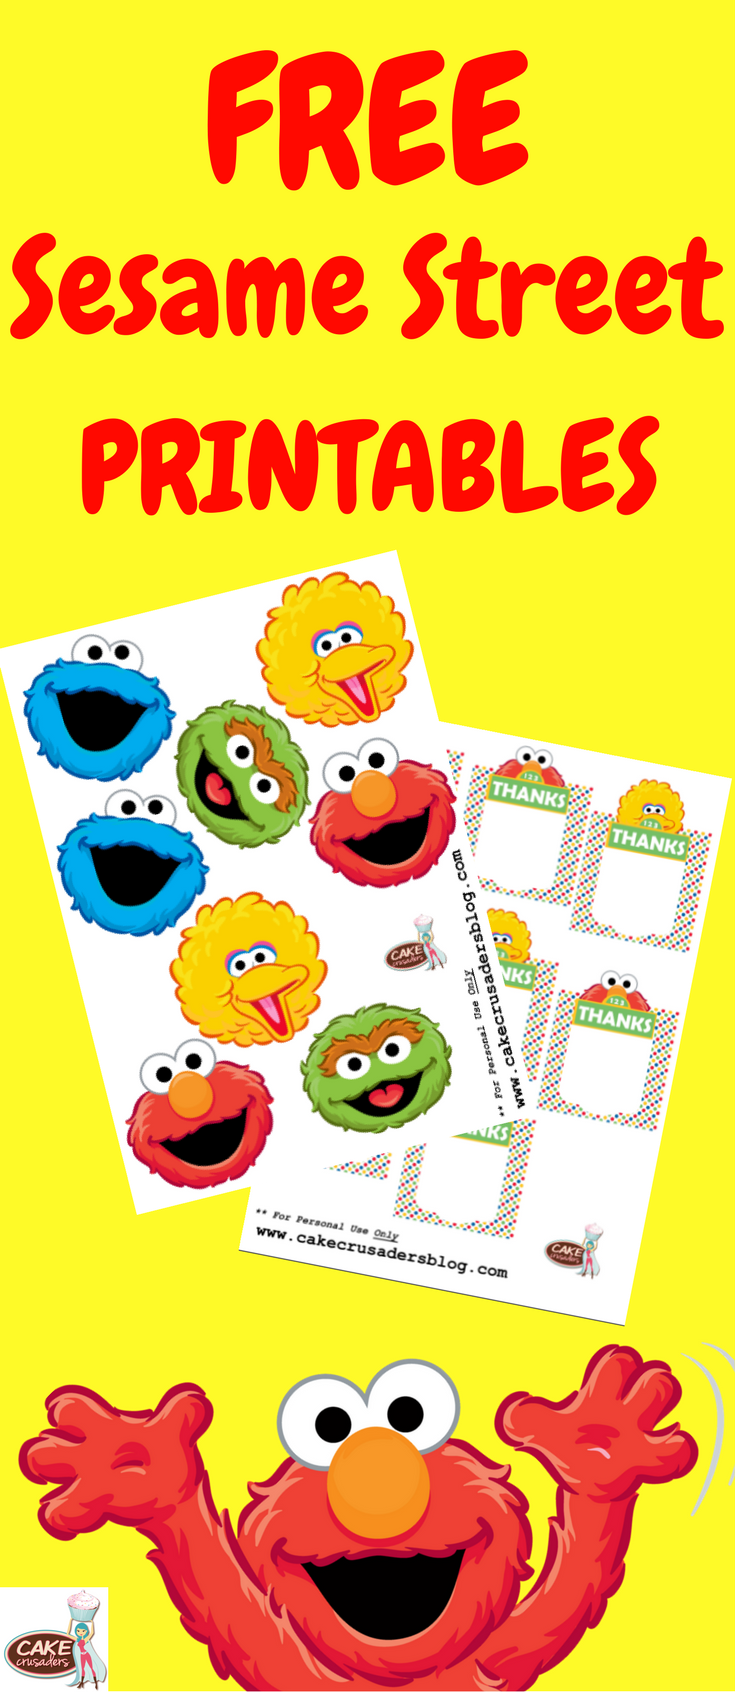 Sesame Street Birthday Party Decorations | Cookie monster, Sesame ...